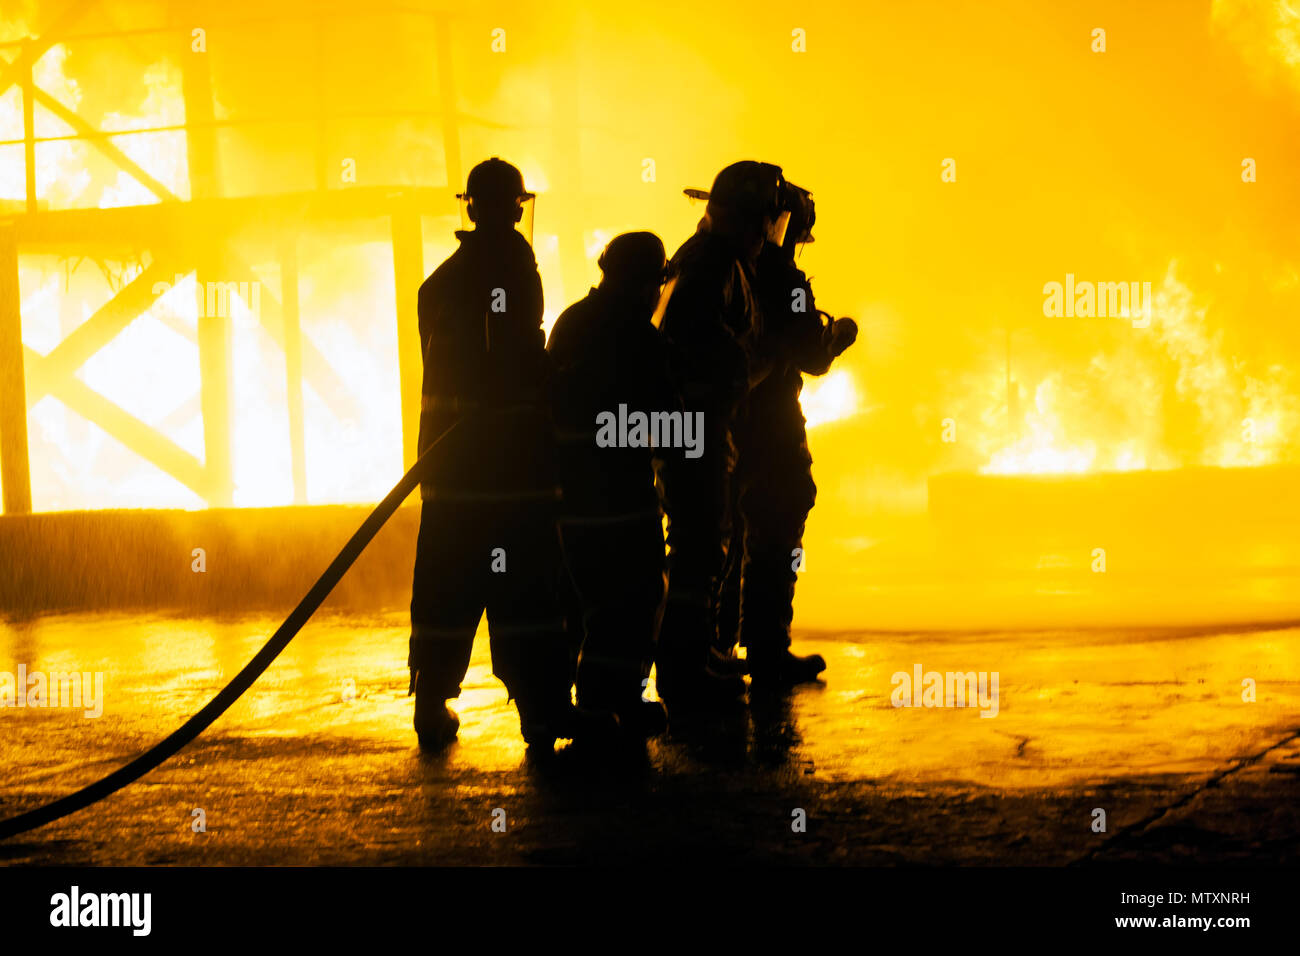 JOHANNESBURG, SOUTH AFRICA - MAY, 2018 Group of firefighters standing in front of fire with hose during fighting training exercise - Stock Image